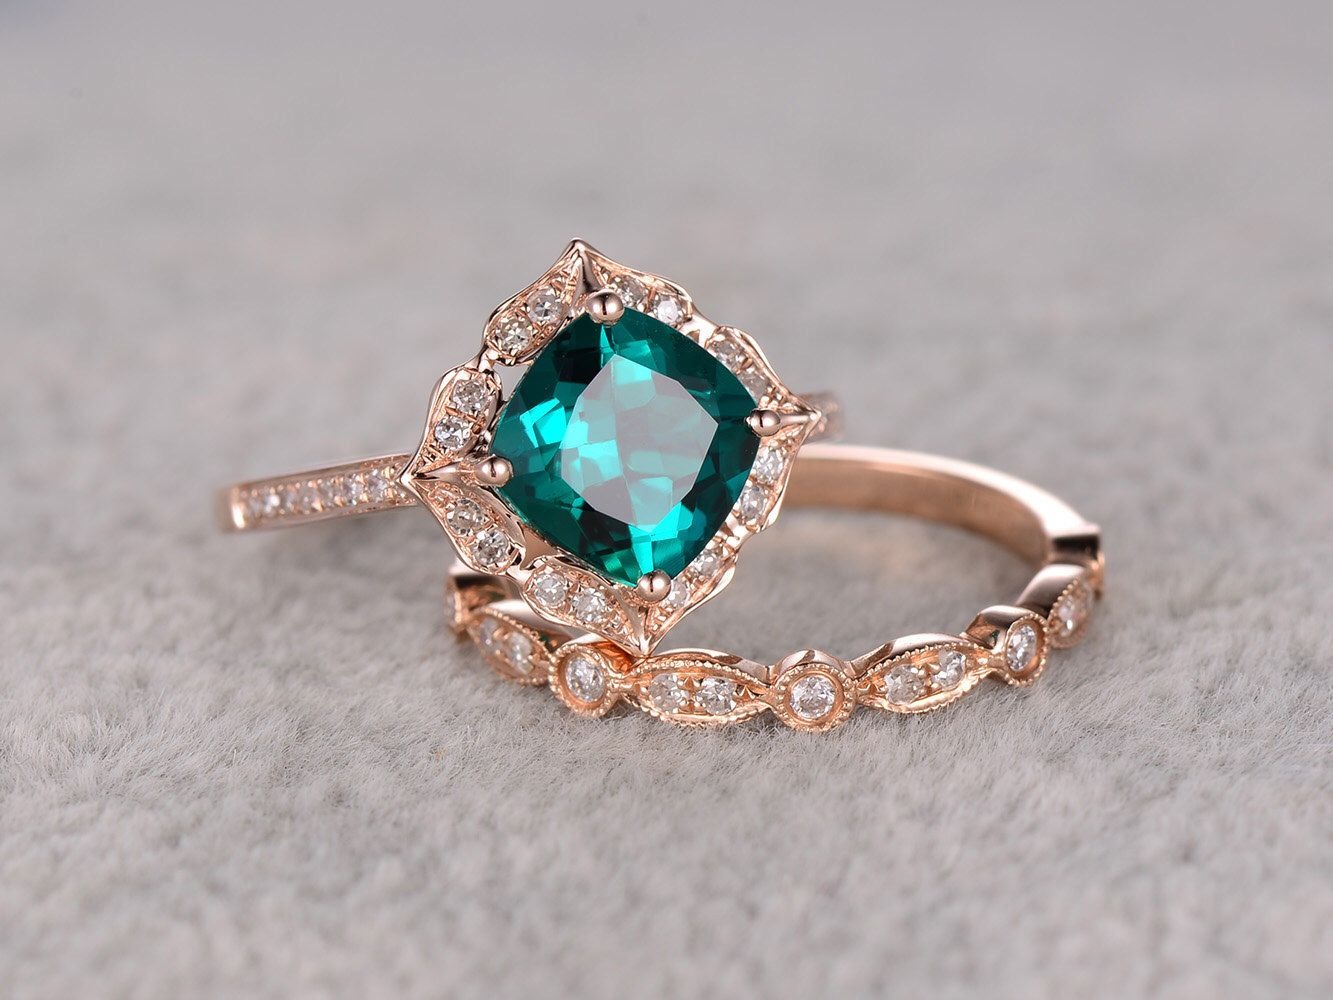 2pcs Emerald Engagement Ring Set Rose Gold,diamond Wedding Band,7mm Cushion  Cut,